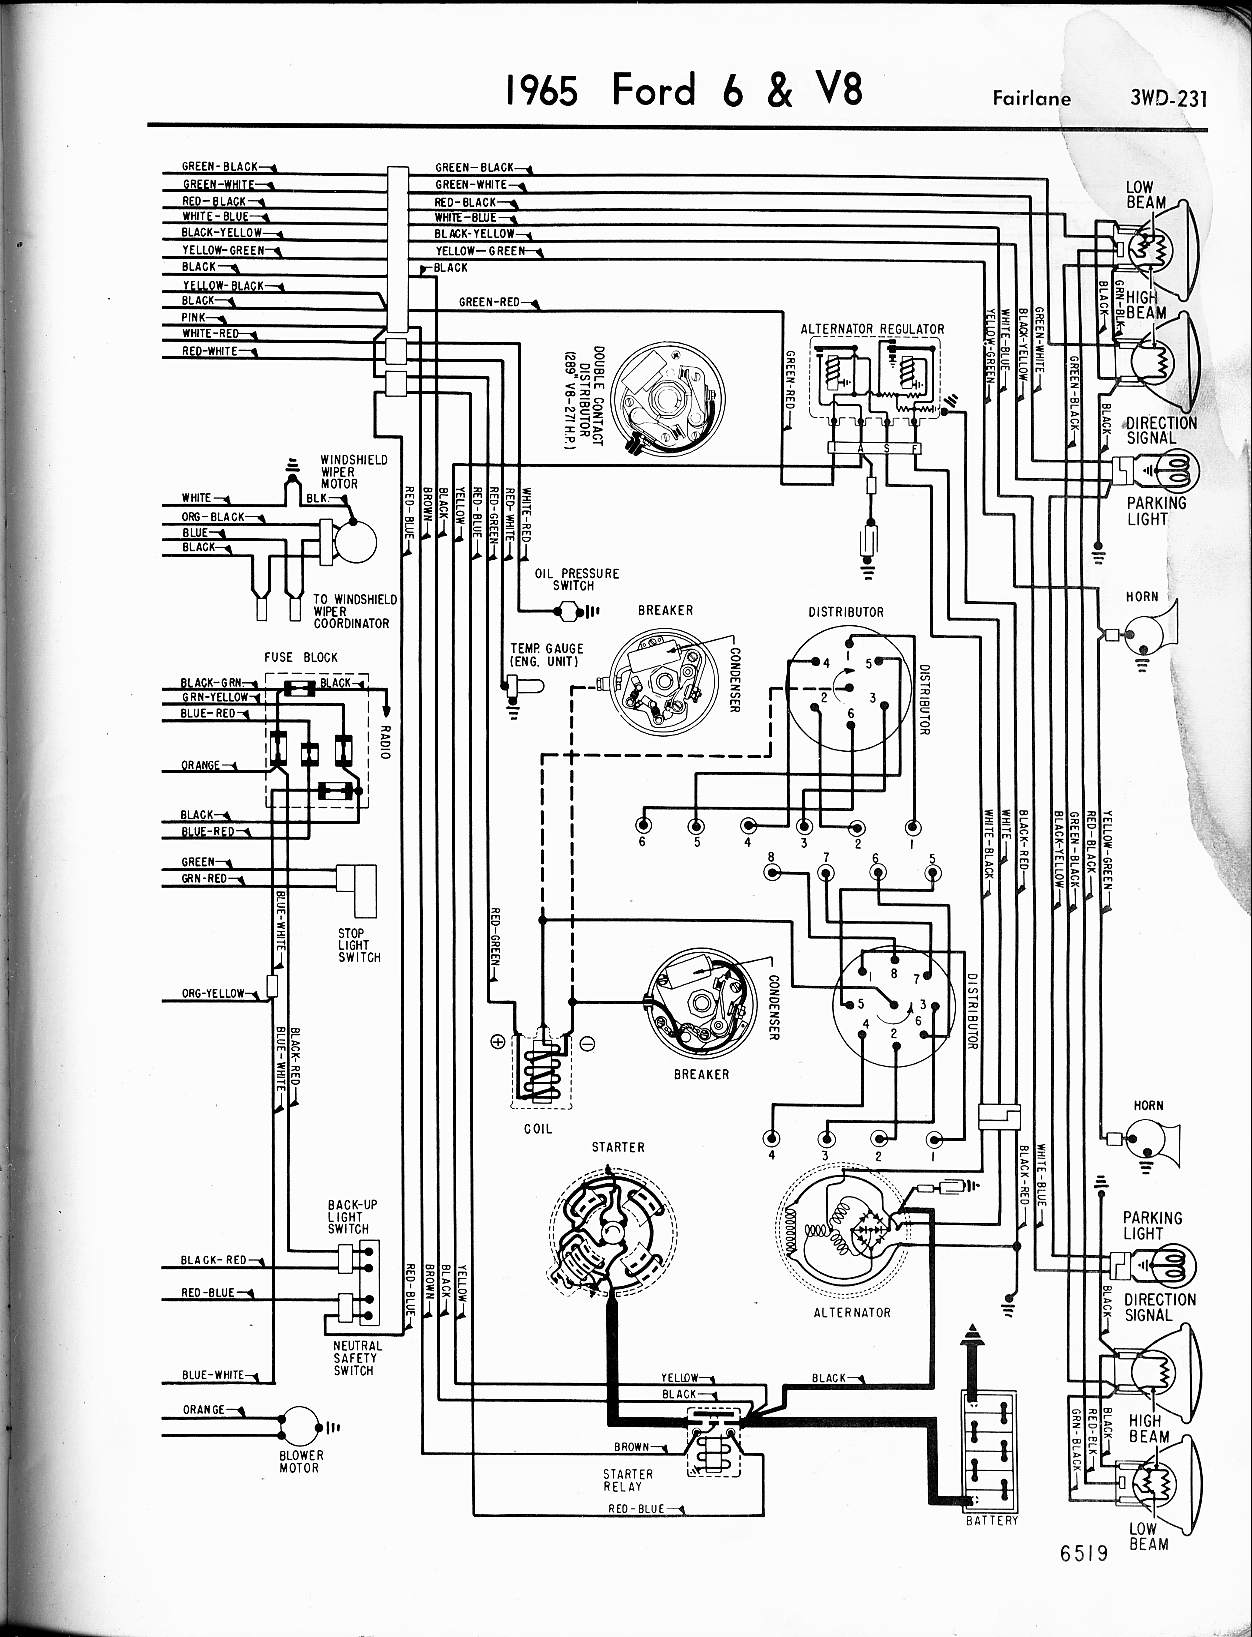 65 ford fairlane wiring diagram - wiring diagram long-pair-a -  long-pair-a.zaafran.it  zaafran.it